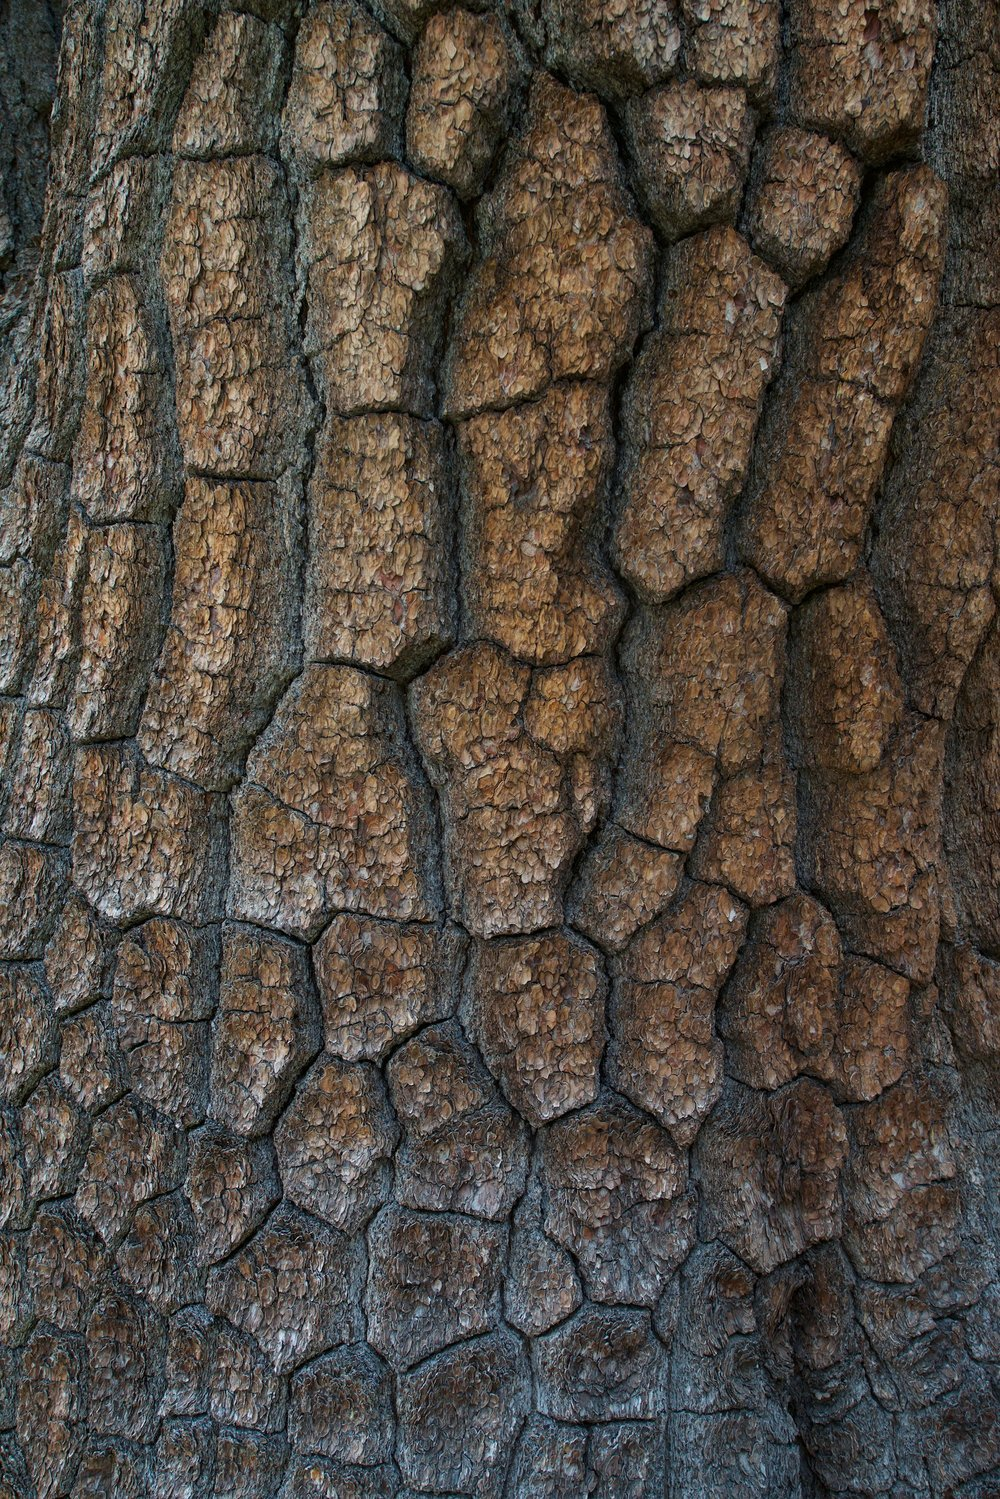 2015-0067-0187.  Bark of a Ponderosa Pine, Sierra National Forest, California.   Purchase this pair of prints.